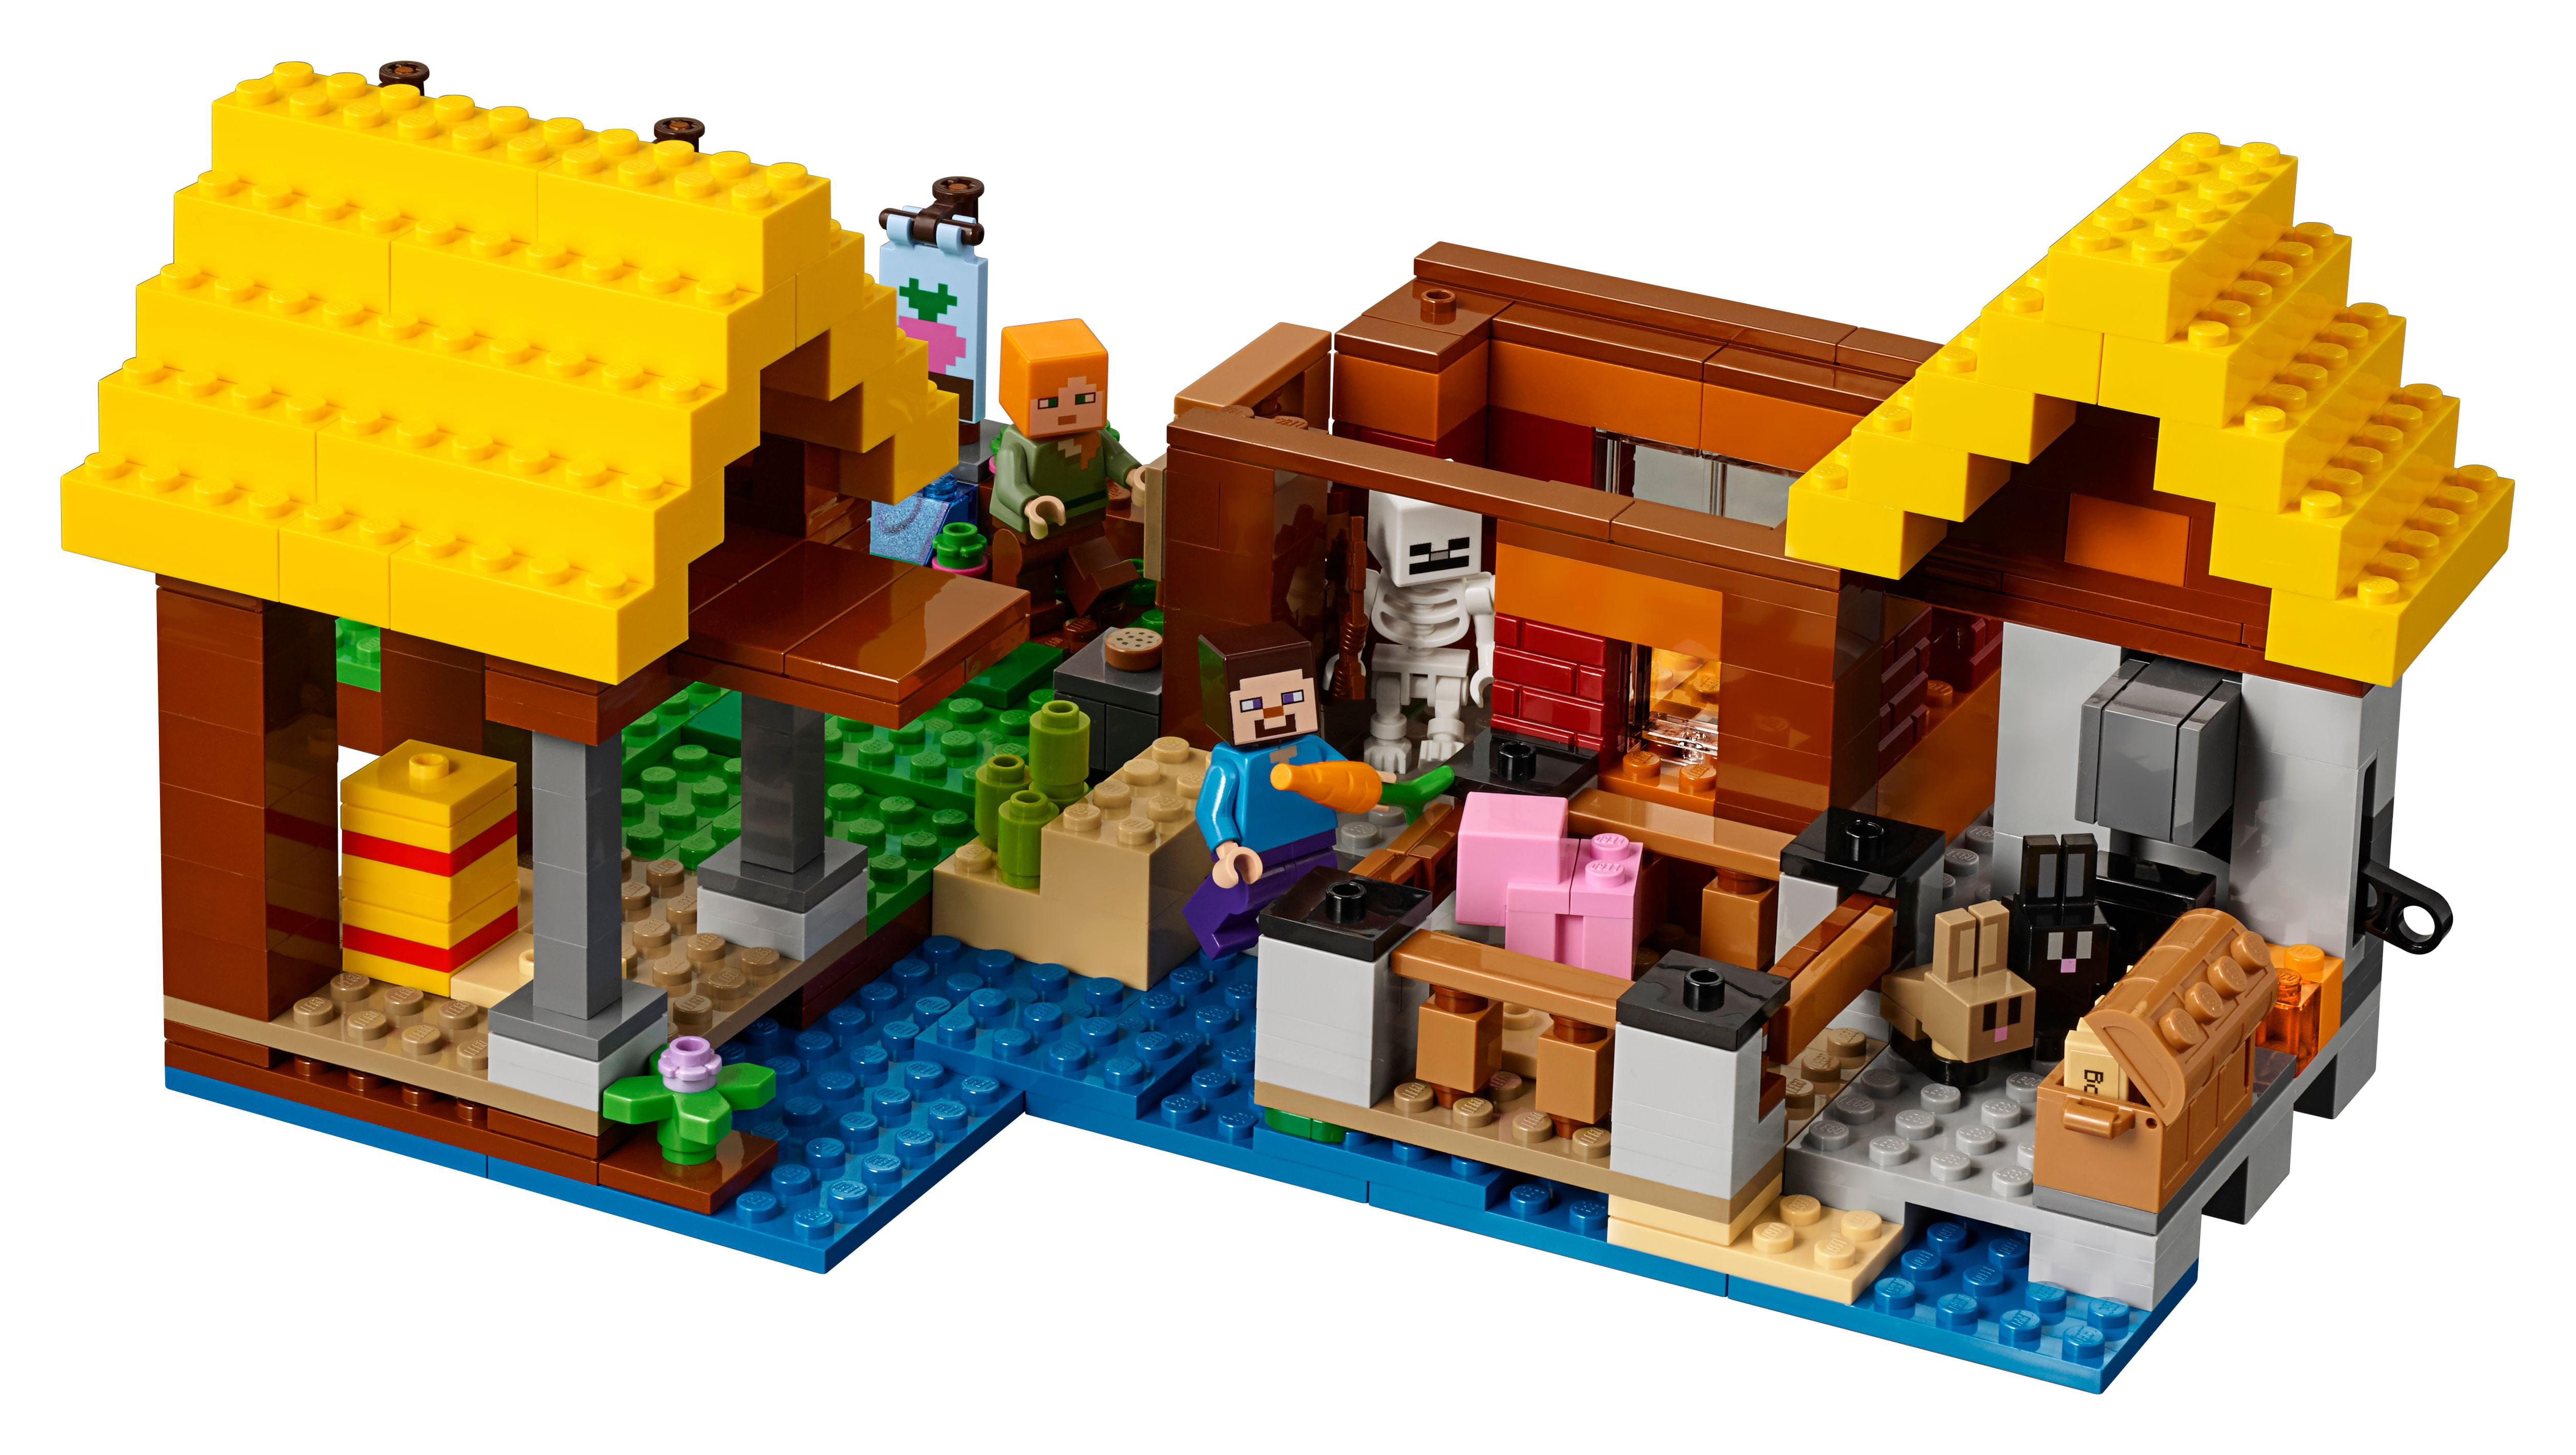 Phenomenal Lego Minecraft The Farm Cottage 21144 549 Pieces Walmart Com Download Free Architecture Designs Osuribritishbridgeorg